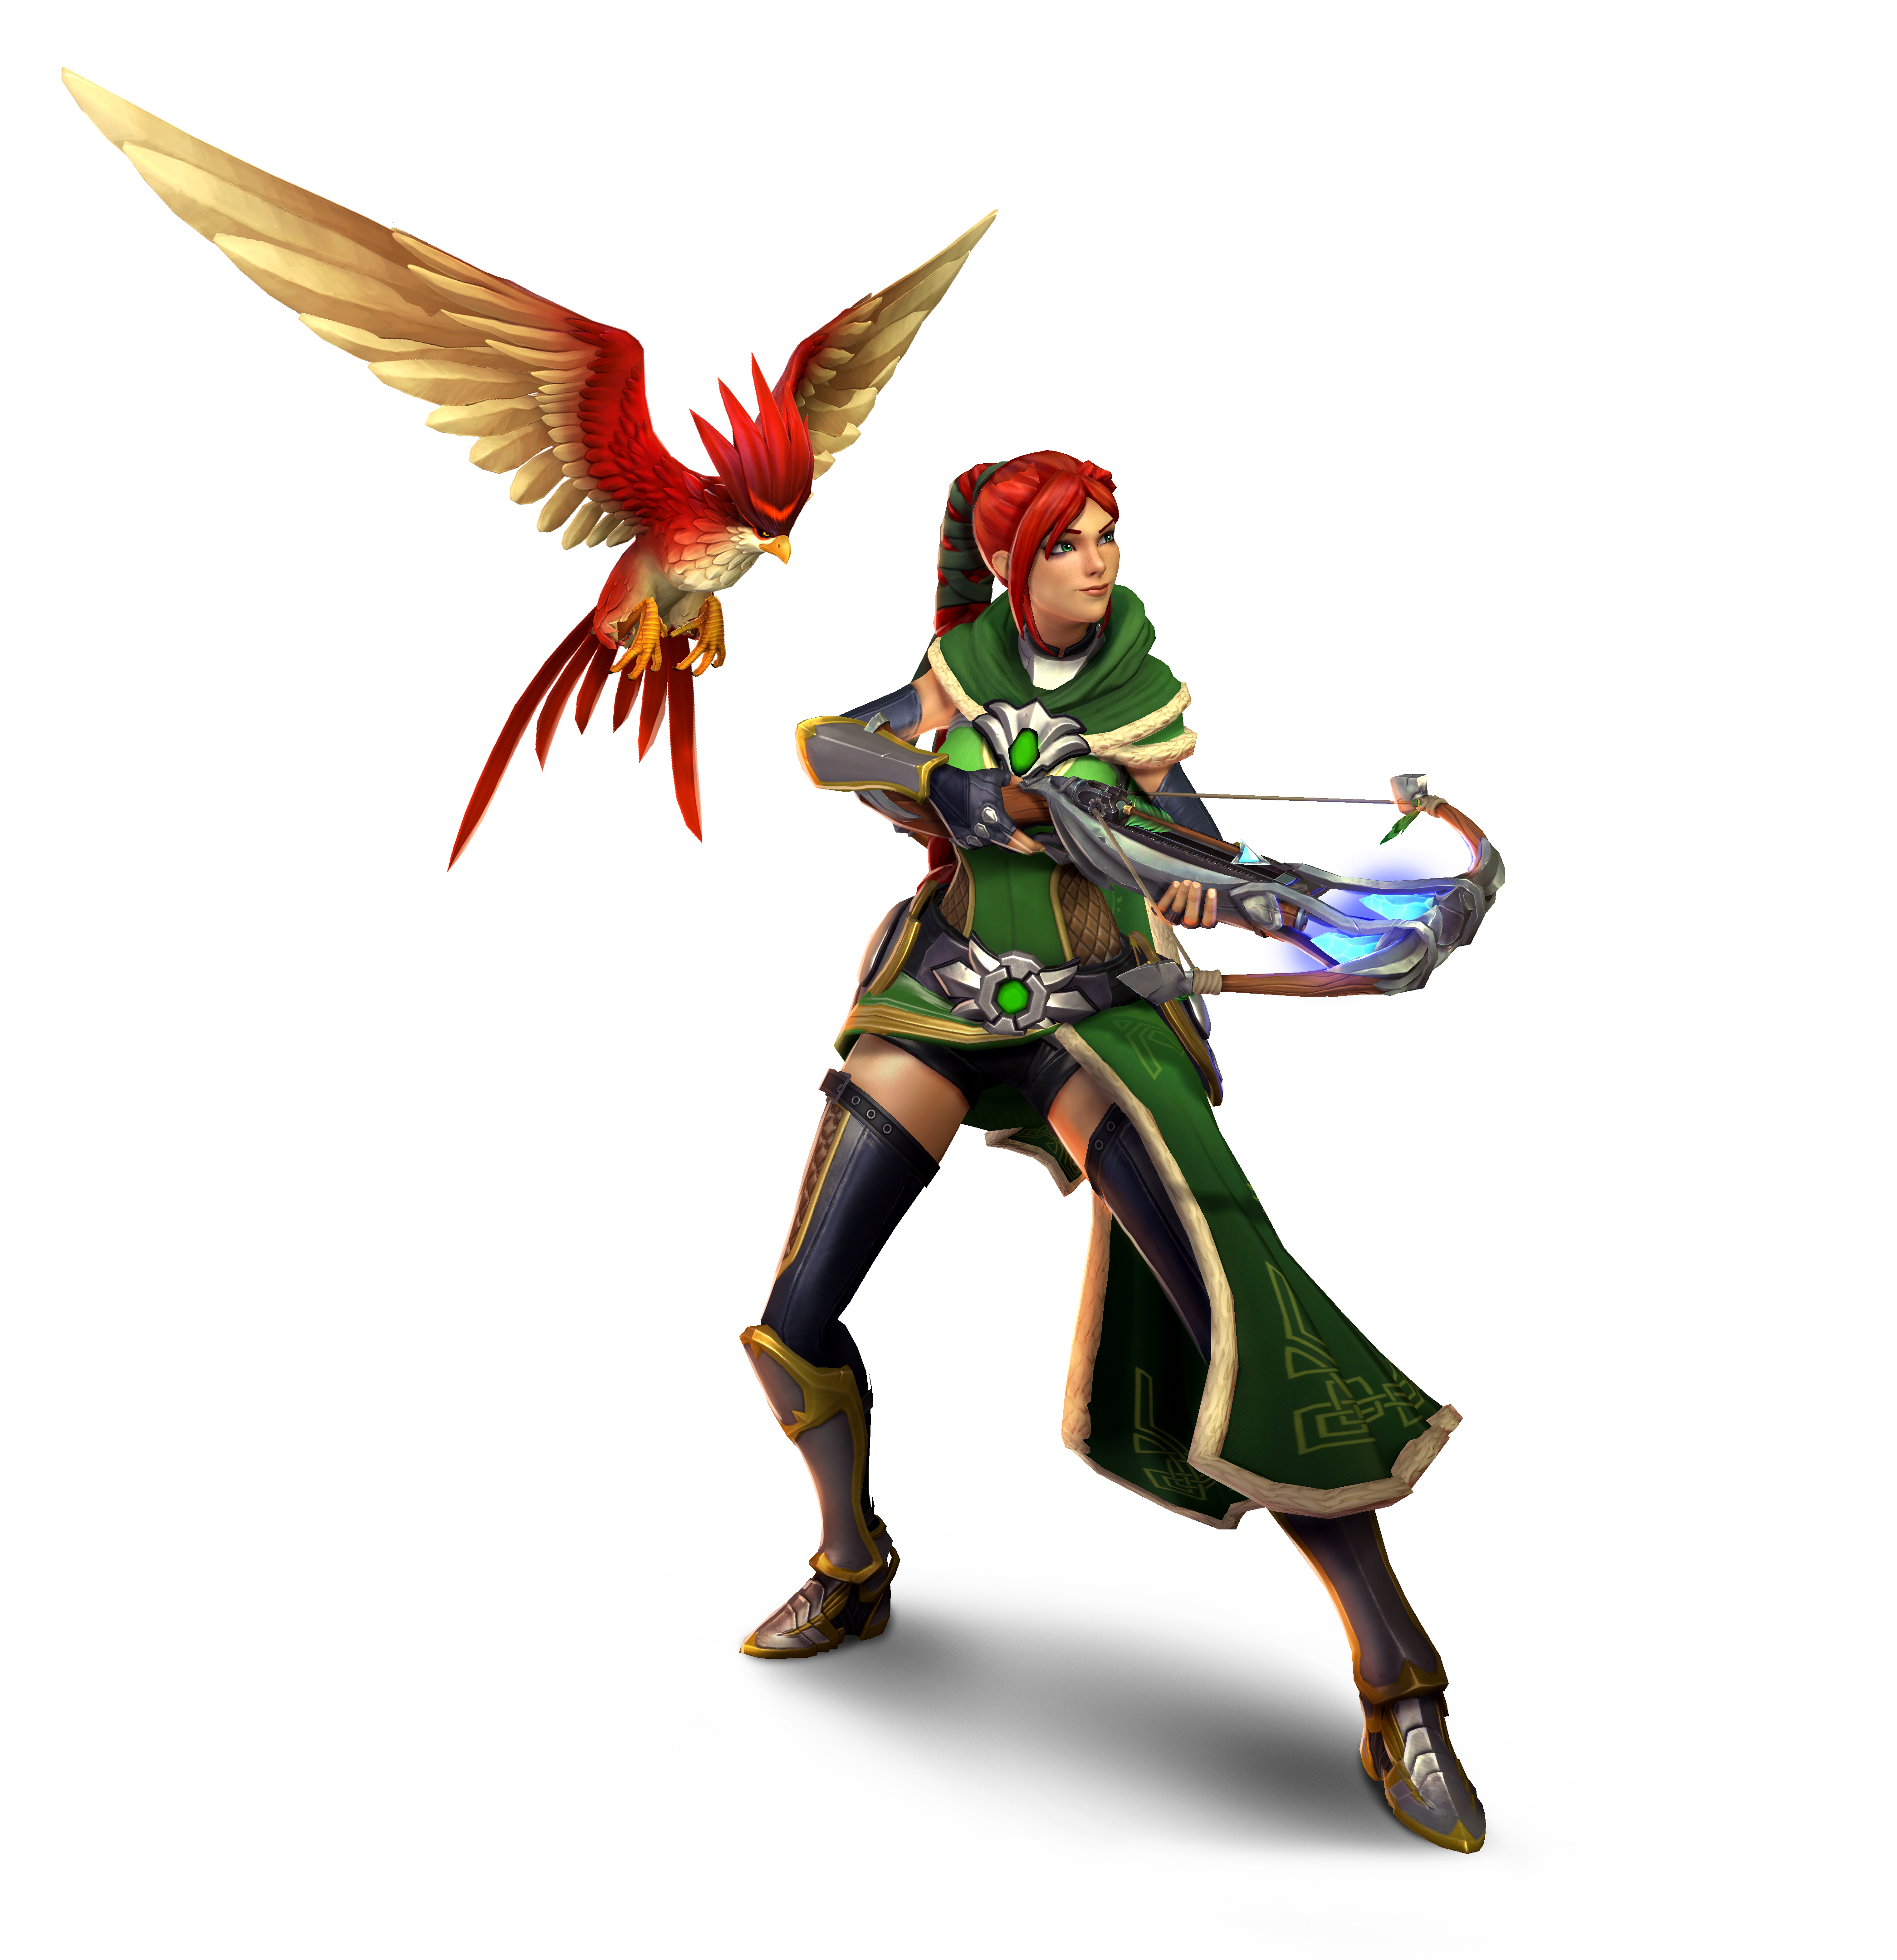 Smite Character Fictional Supernatural Ainsworth Paladins Cassie PNG Image